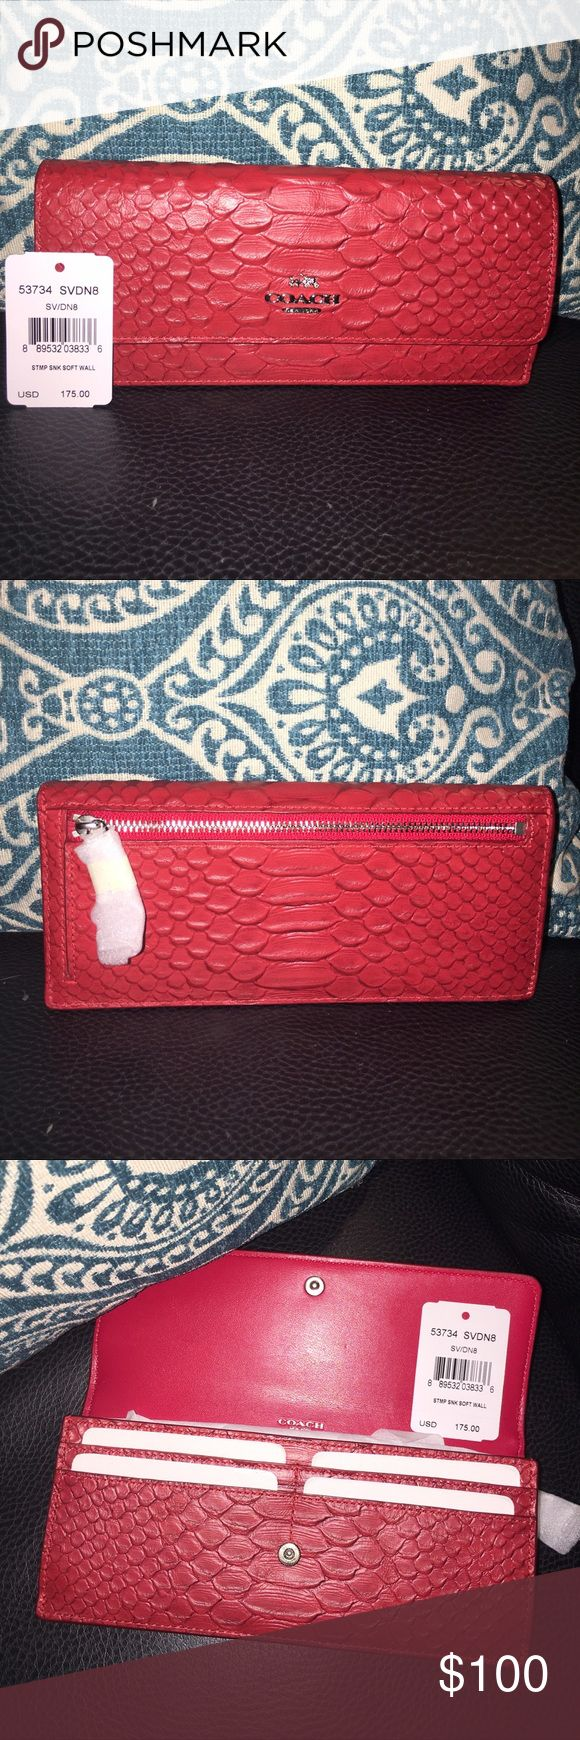 "Coach wallet New,brick red,leather Coach wallet with crocodile texture.Eight card slots,a bill compartment,and a slip compartment inside.Snap closure and large zippered coin holder on back.Gold and silver metal hardware.Measures approx 8""x4""X1"".Sassy and fun! NWT TOO Coach Bags Wallets"